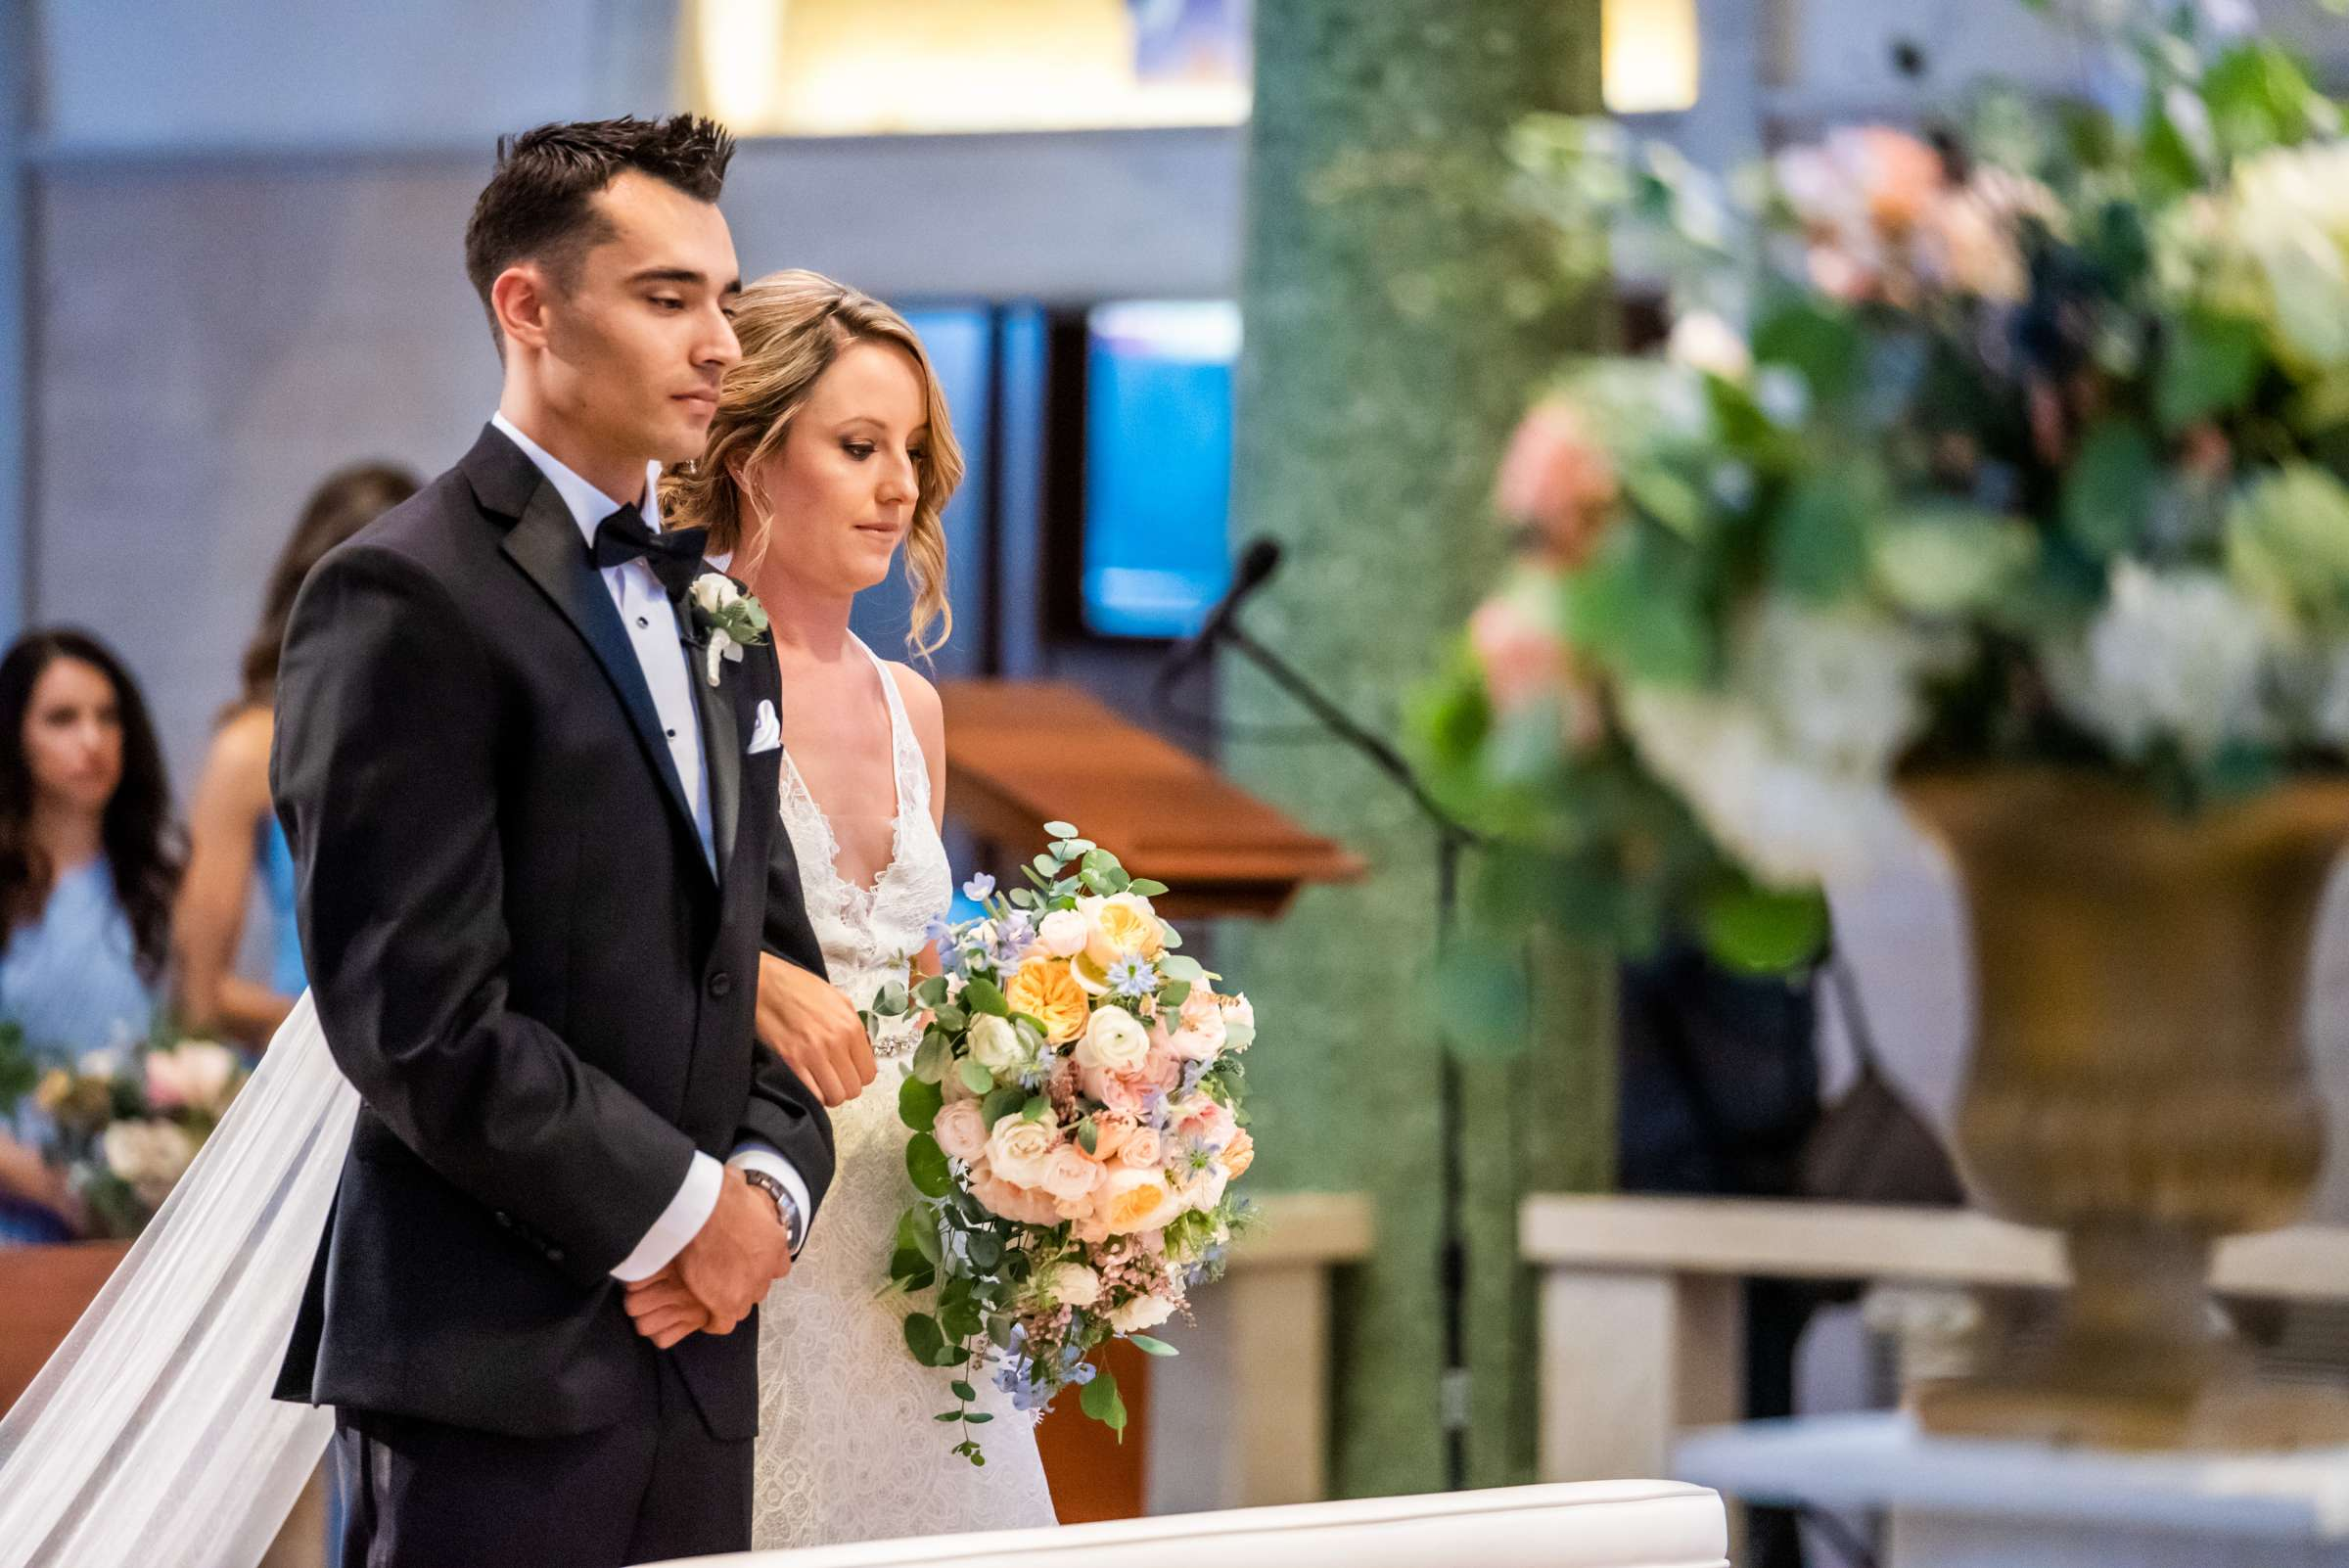 The Prado Wedding coordinated by Bliss Events, Sara and Marvin Wedding Photo #559540 by True Photography